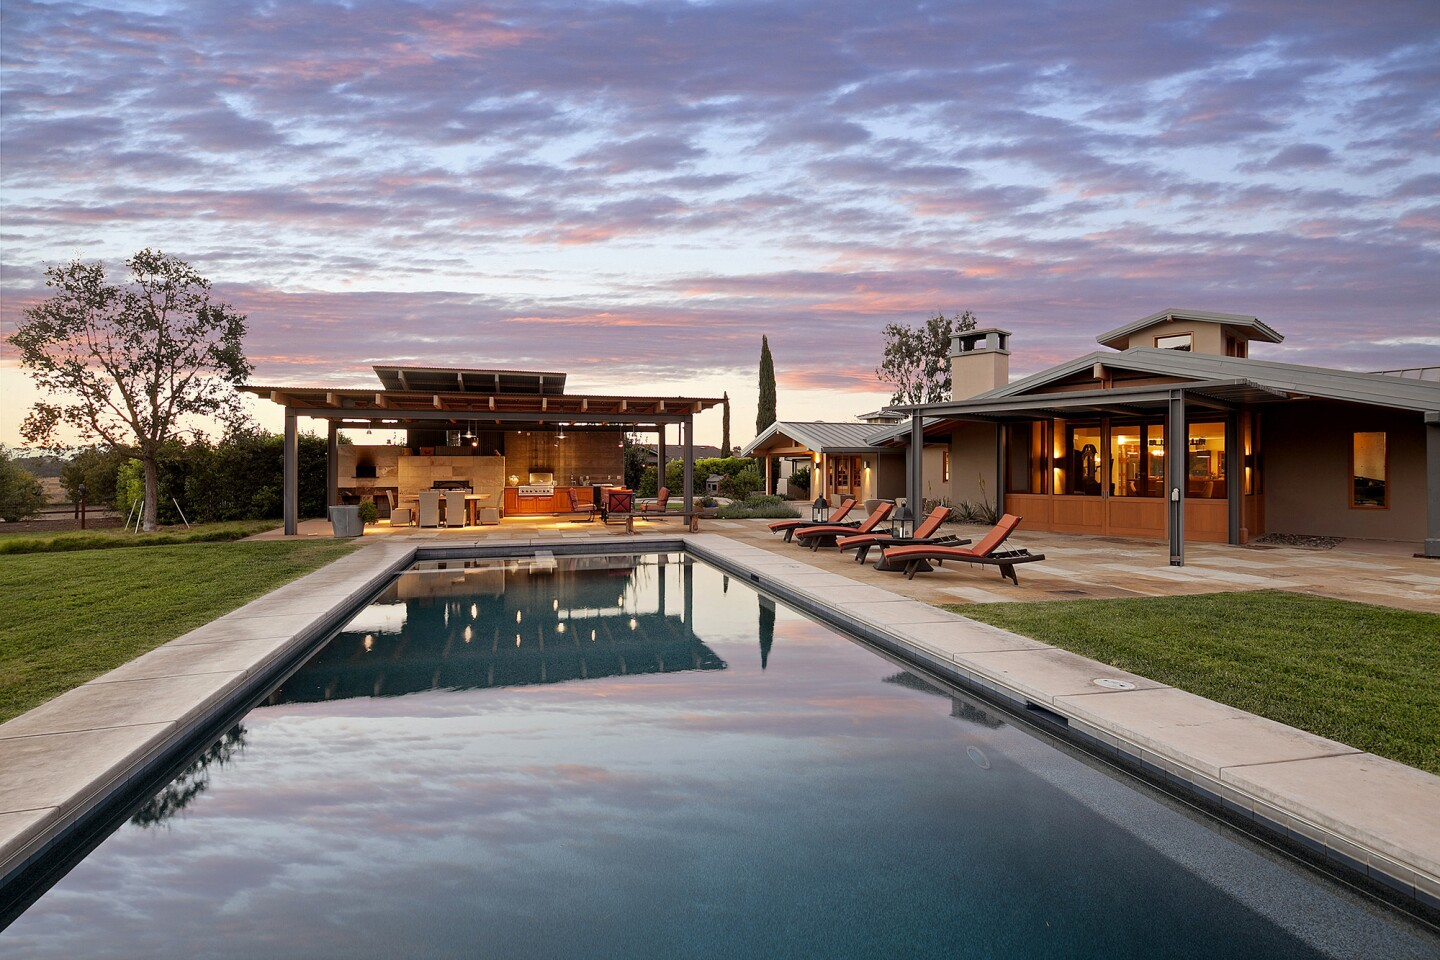 Actress-singer Olivia Newton-John is asking $5.4 million for her Santa Ynez Valle ranch, which features two homes, a swimming pool and a smattering of equestrian facilities. The main house features a cathedral-like great room topped with skylights and exposed beams. The open-plan space adjoins the kitchen.